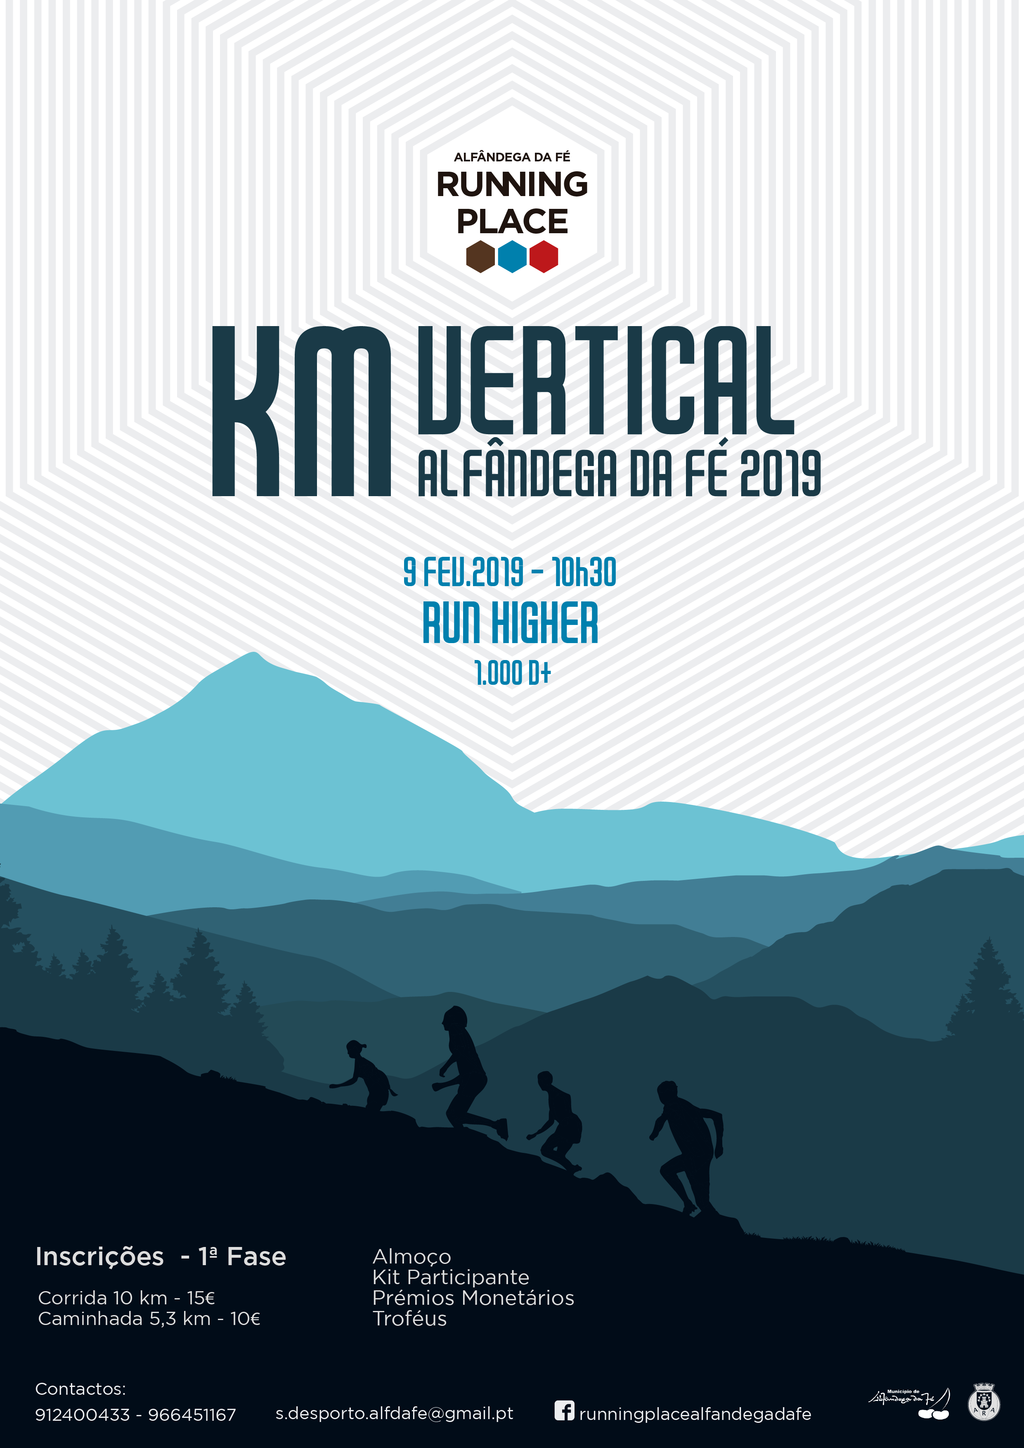 cartaz km vertical 2019